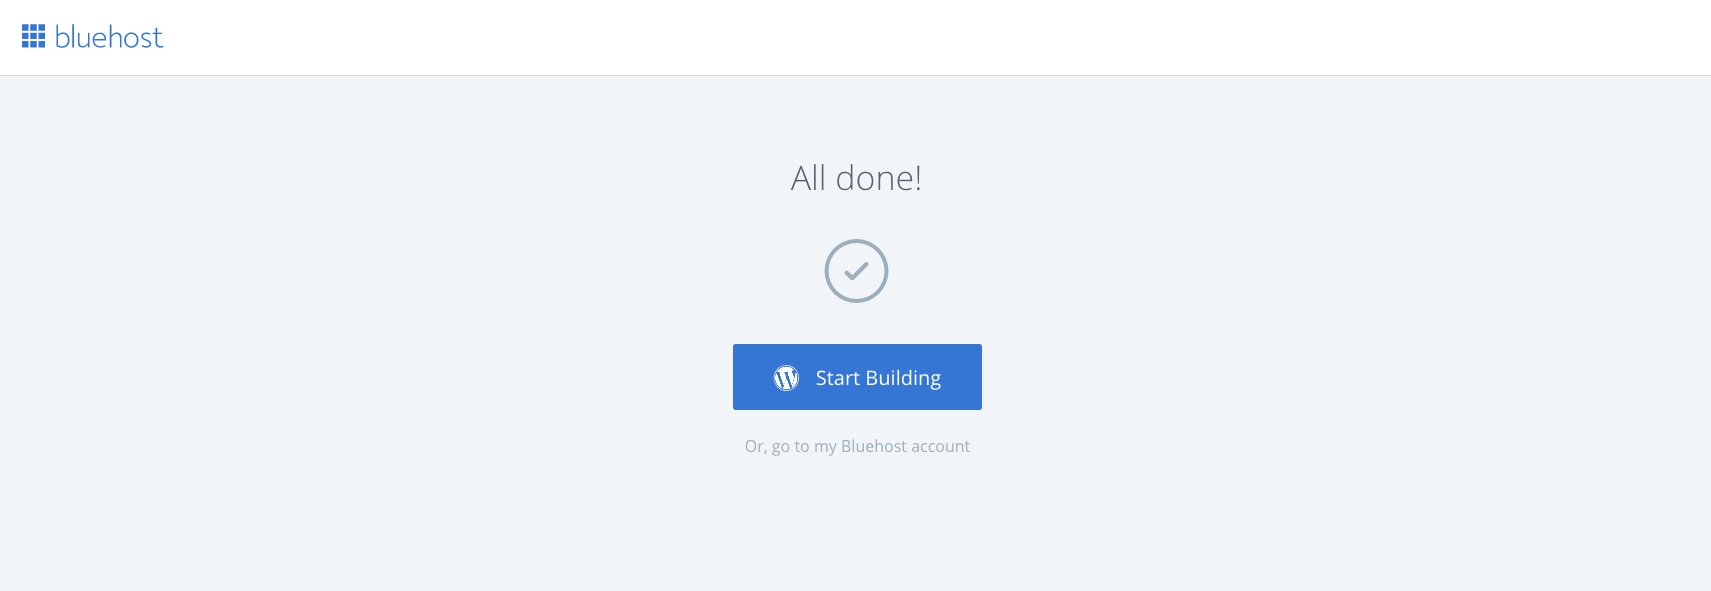 Bluehost all done message